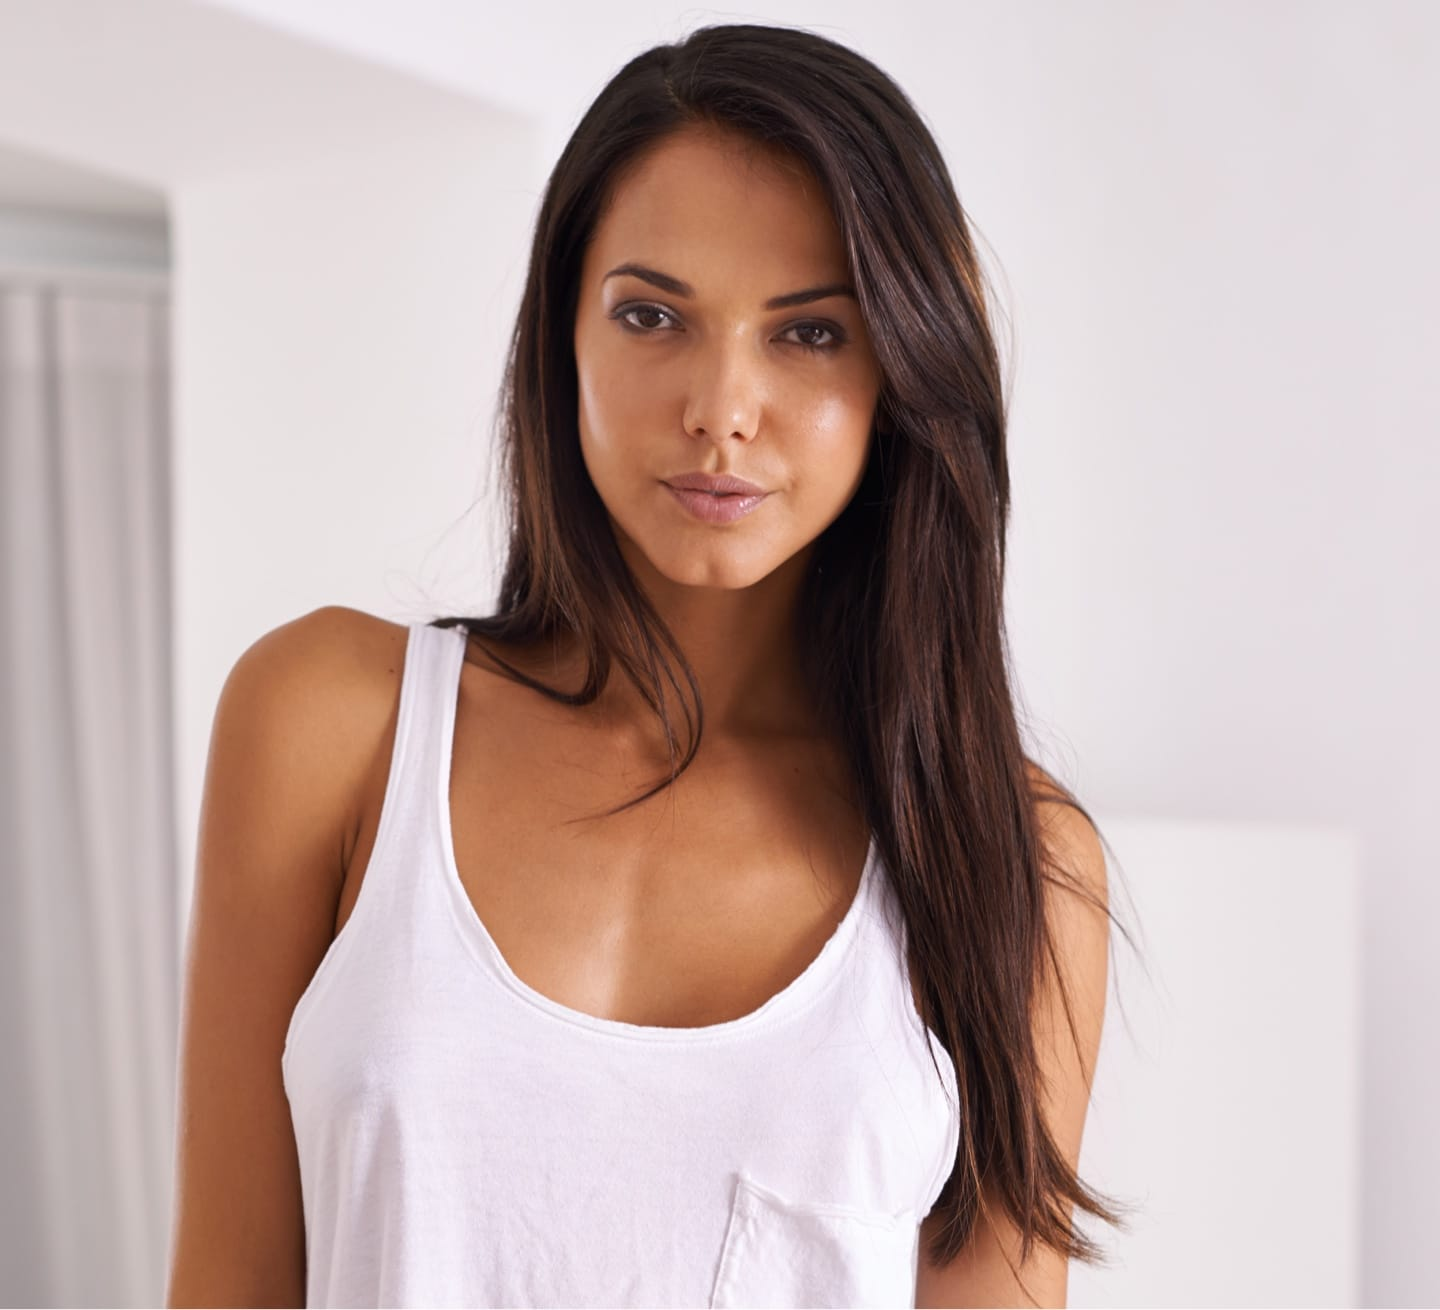 Chin Reduction Surgery in Houston, Texas - Dr. Michel Siegel